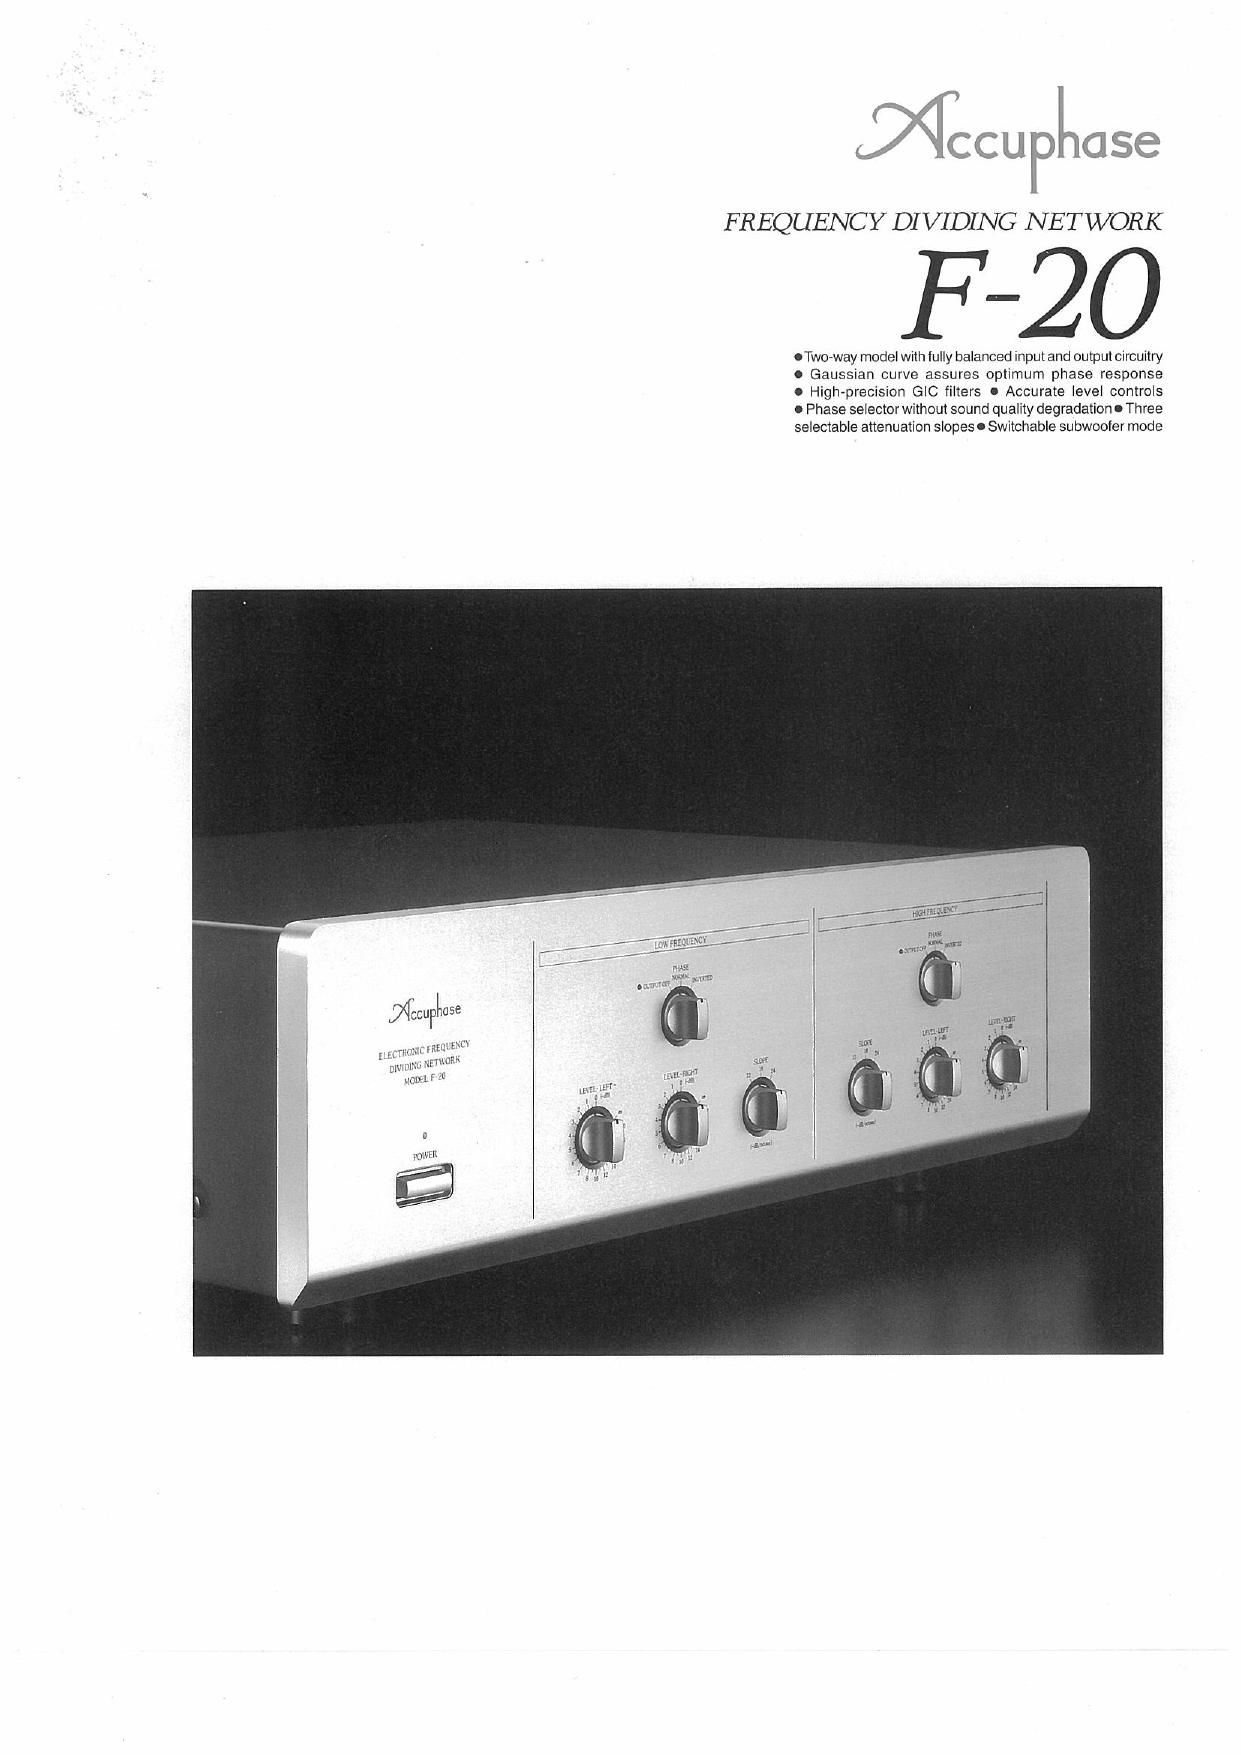 Accuphase F 20 Brochure